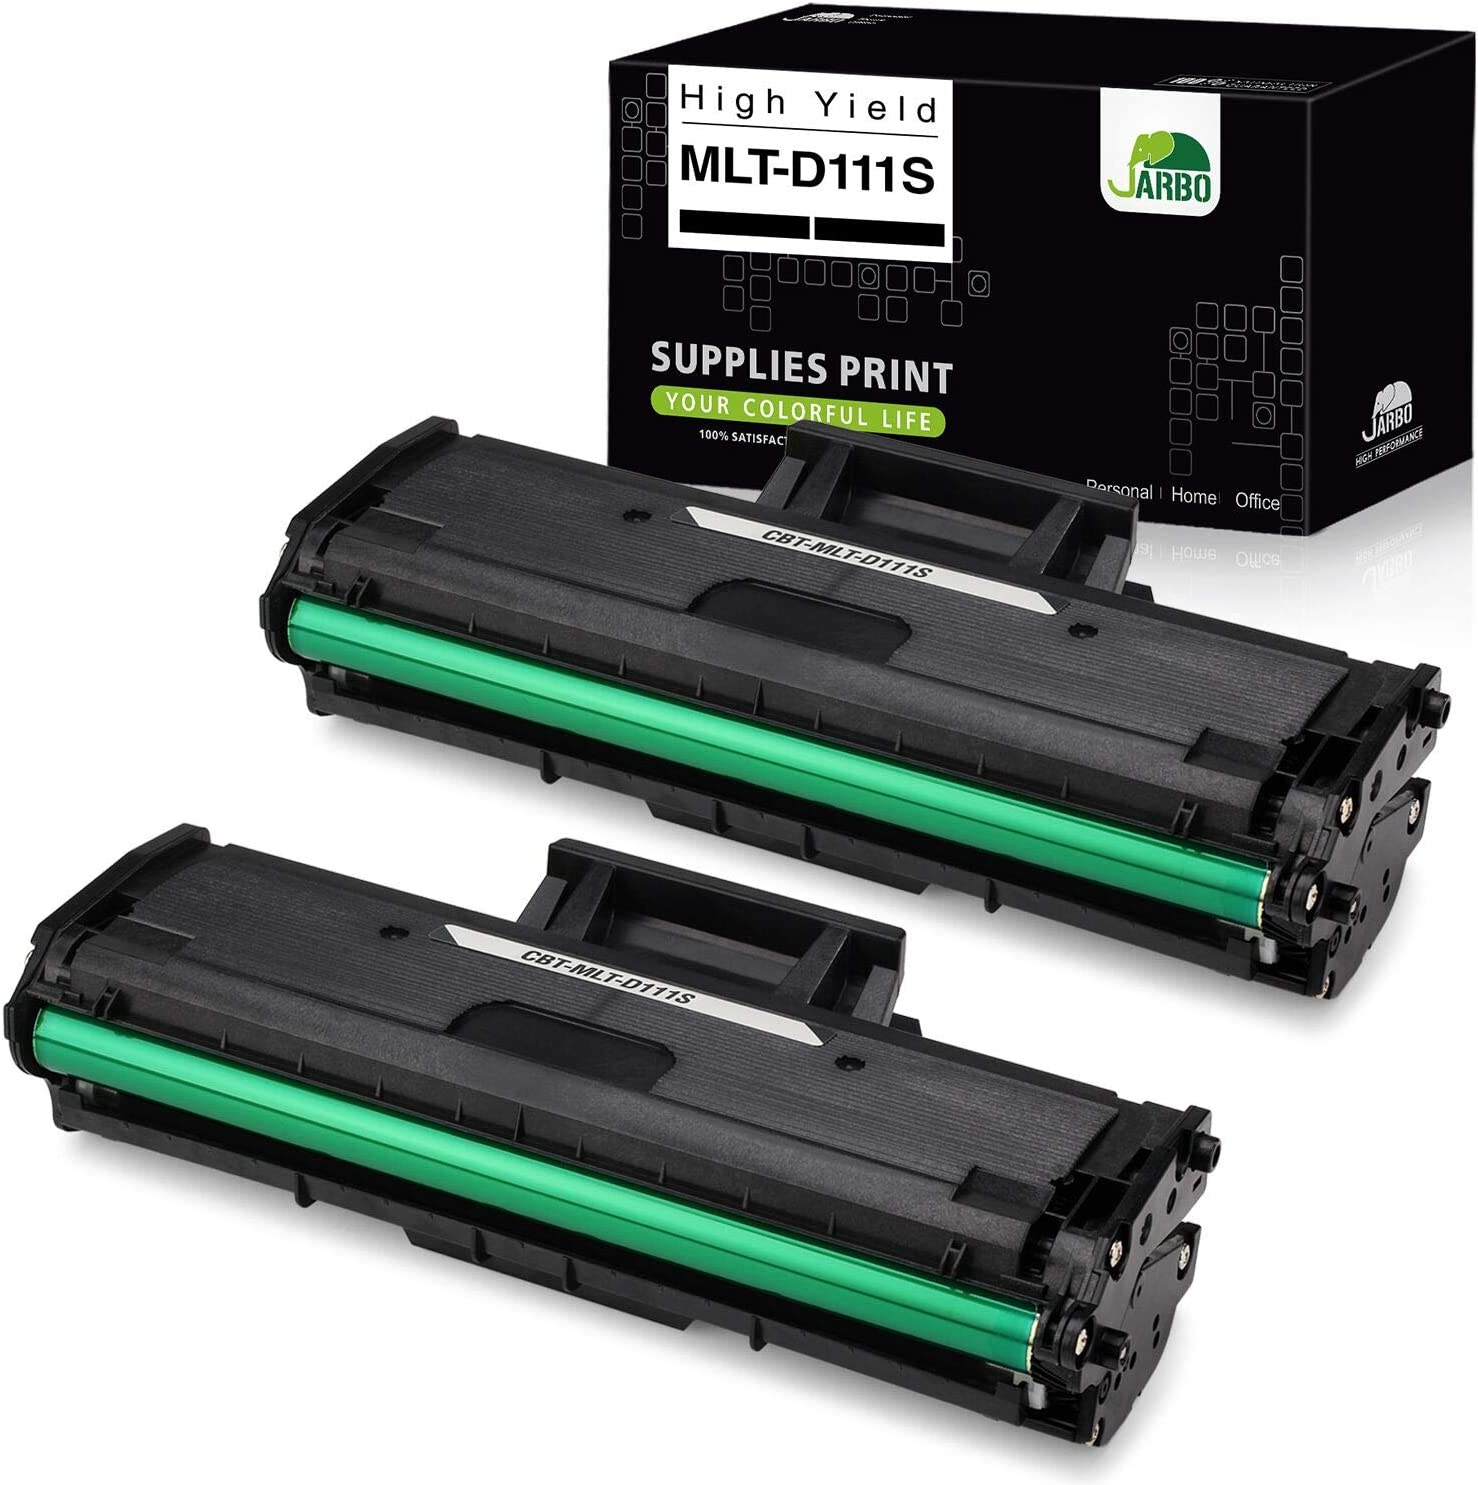 JARBO Compatible Toner Cartridge Replacement for Samsung MLT111S MLT-D111S MLTD111S D111S, High Yield, Use with Samsung Xpress M2020W, M2070FW, M2070W Laser Printer (Black), 2-Pack